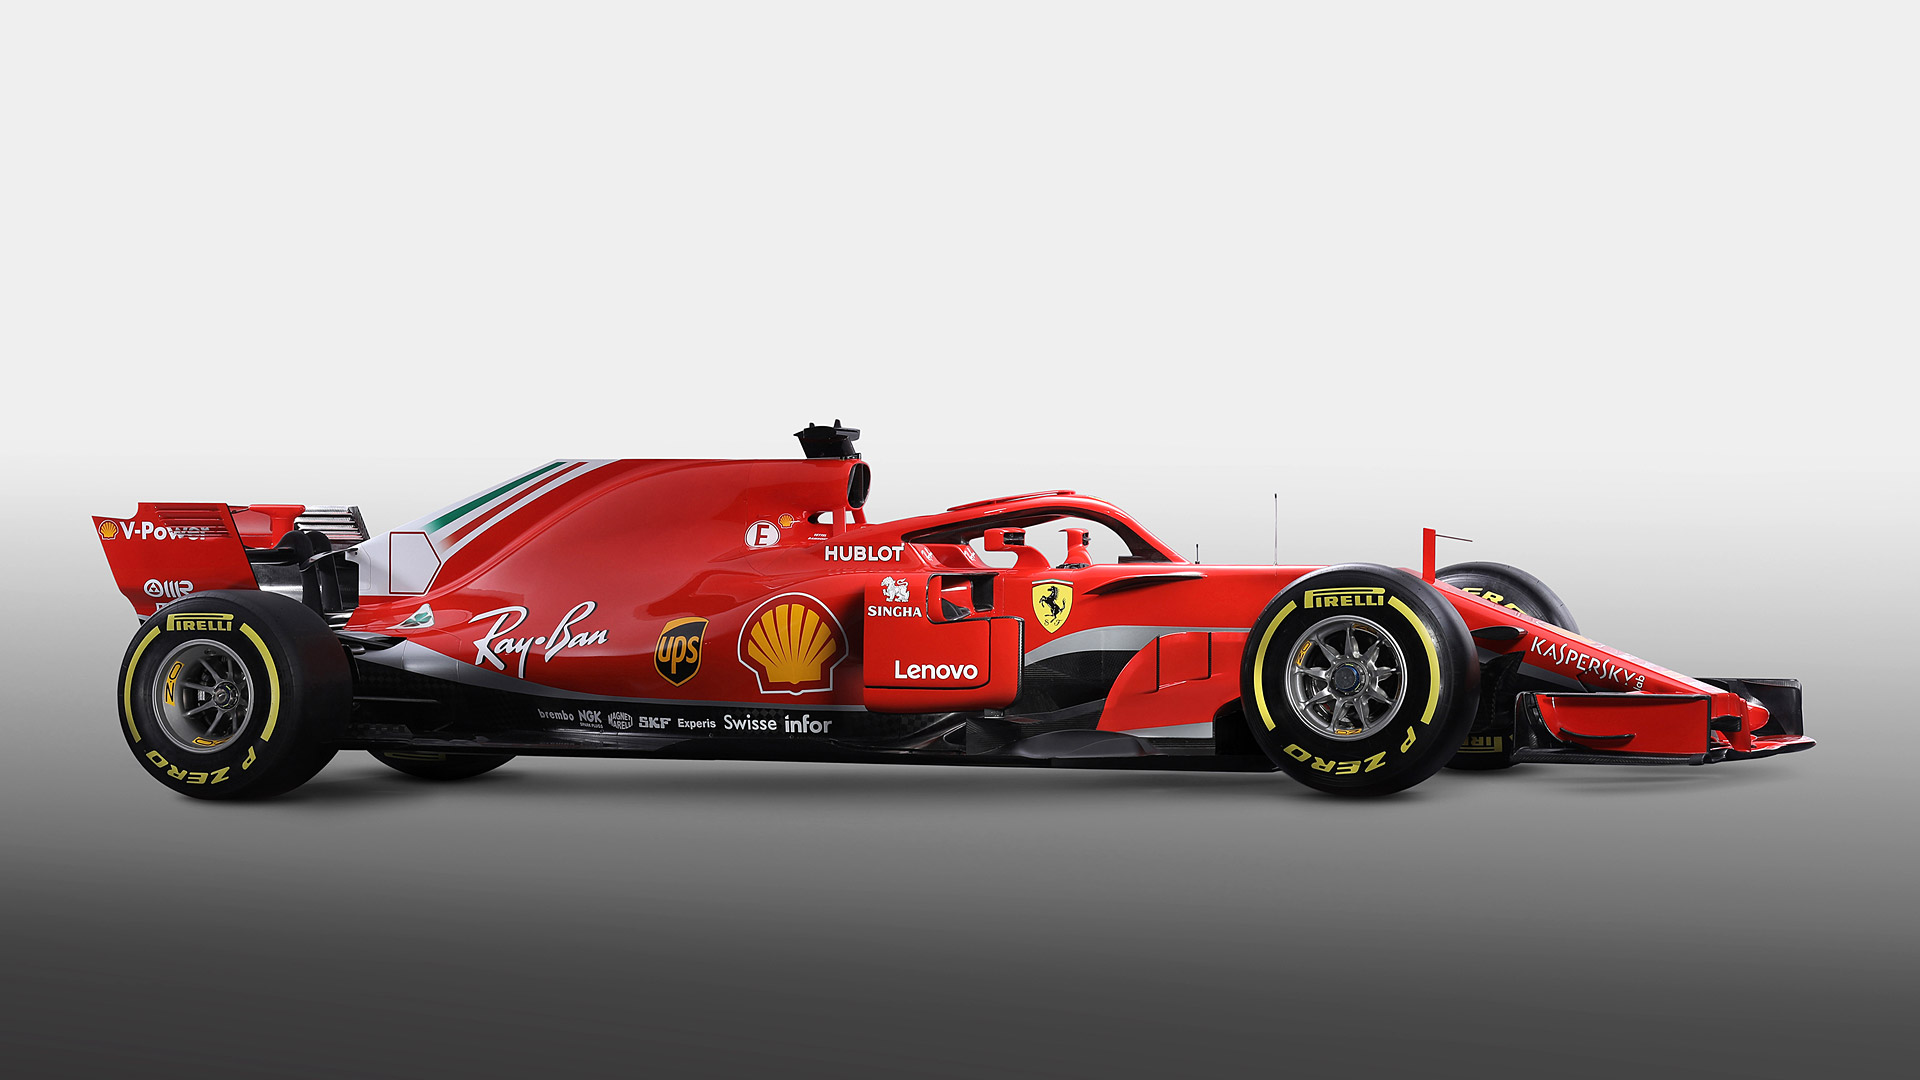 Scuderia Ferrari Wallpaper 1920x1080 Download Hd Wallpaper Wallpapertip